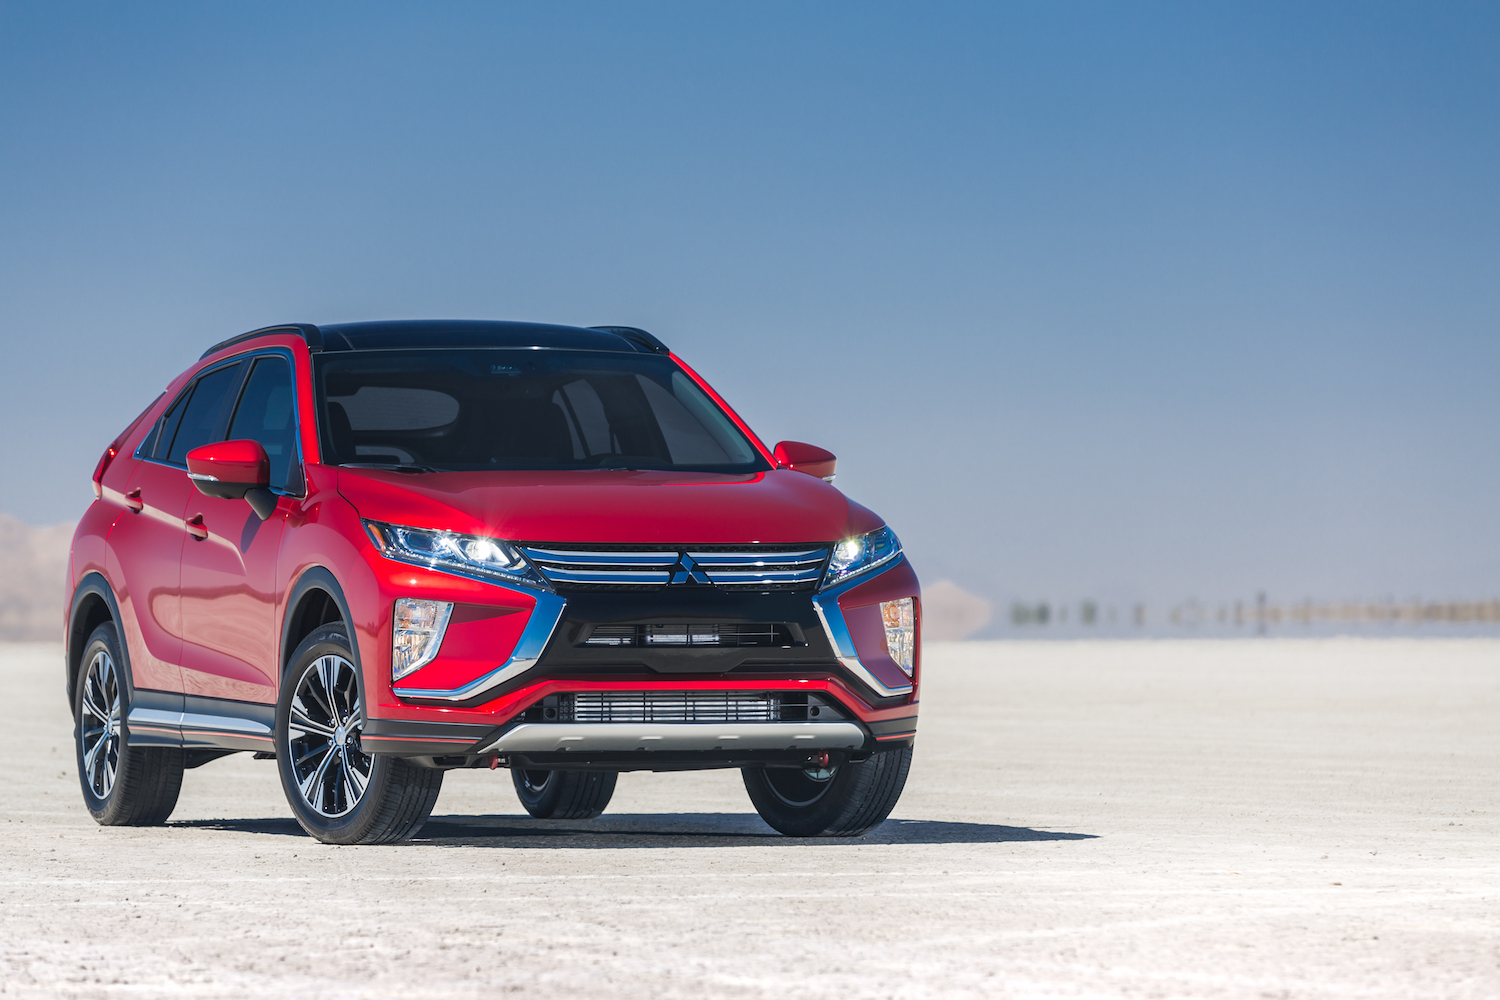 2018 Mitsubishi Eclipse Cross Overview - The News Wheel